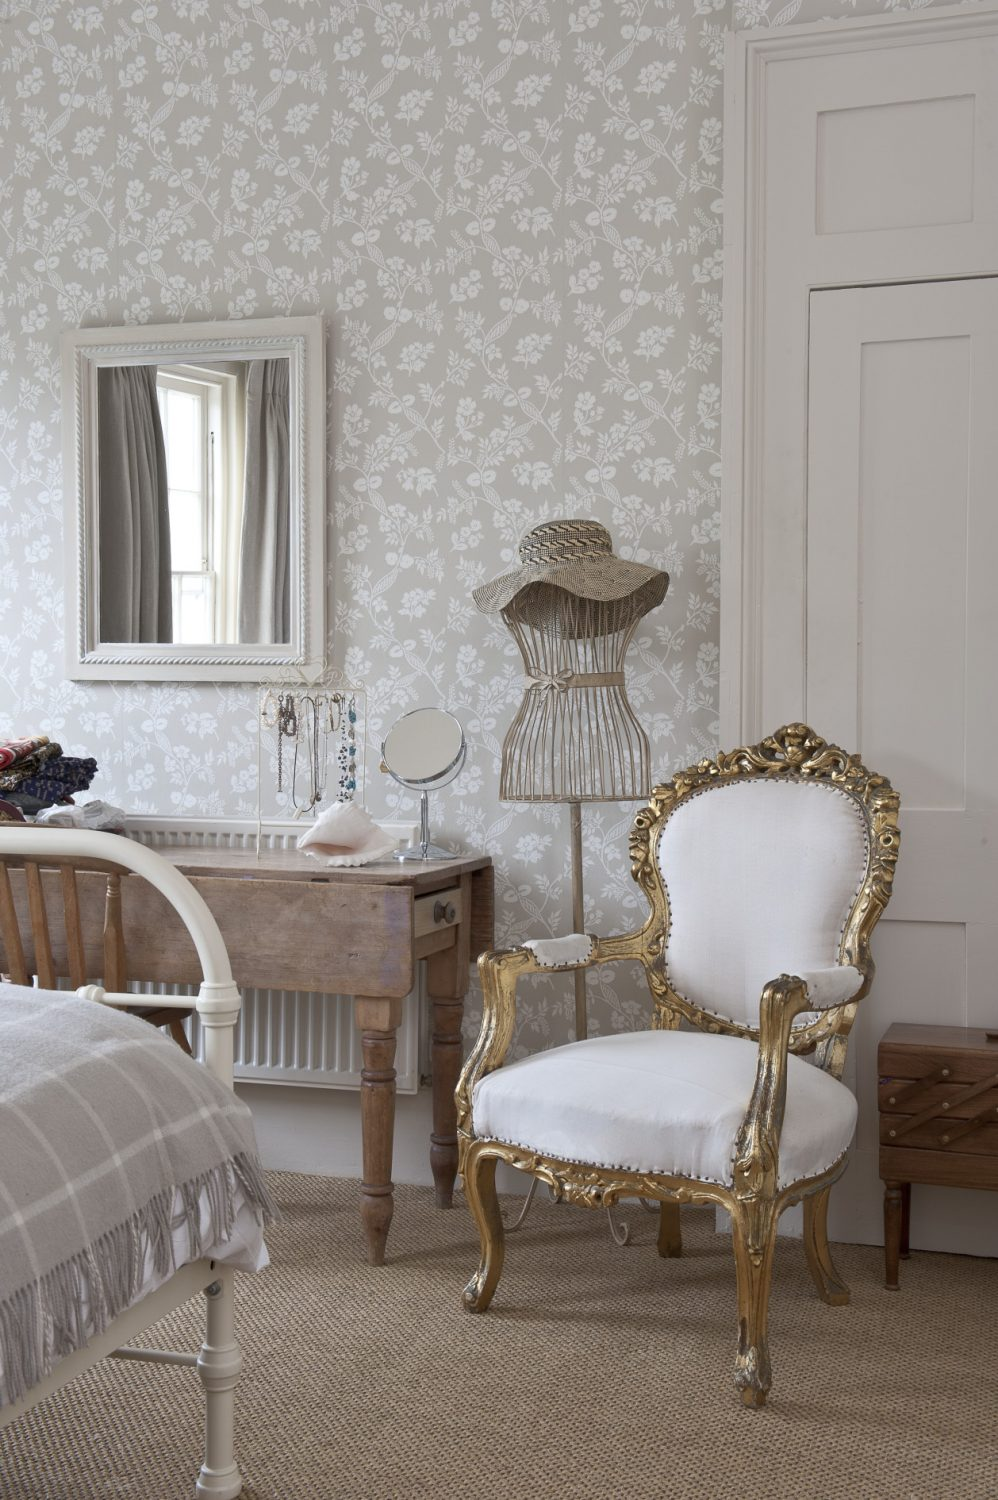 Colefax and Fowler wallpaper takes centre stage in one of Belinda's daughters' rooms